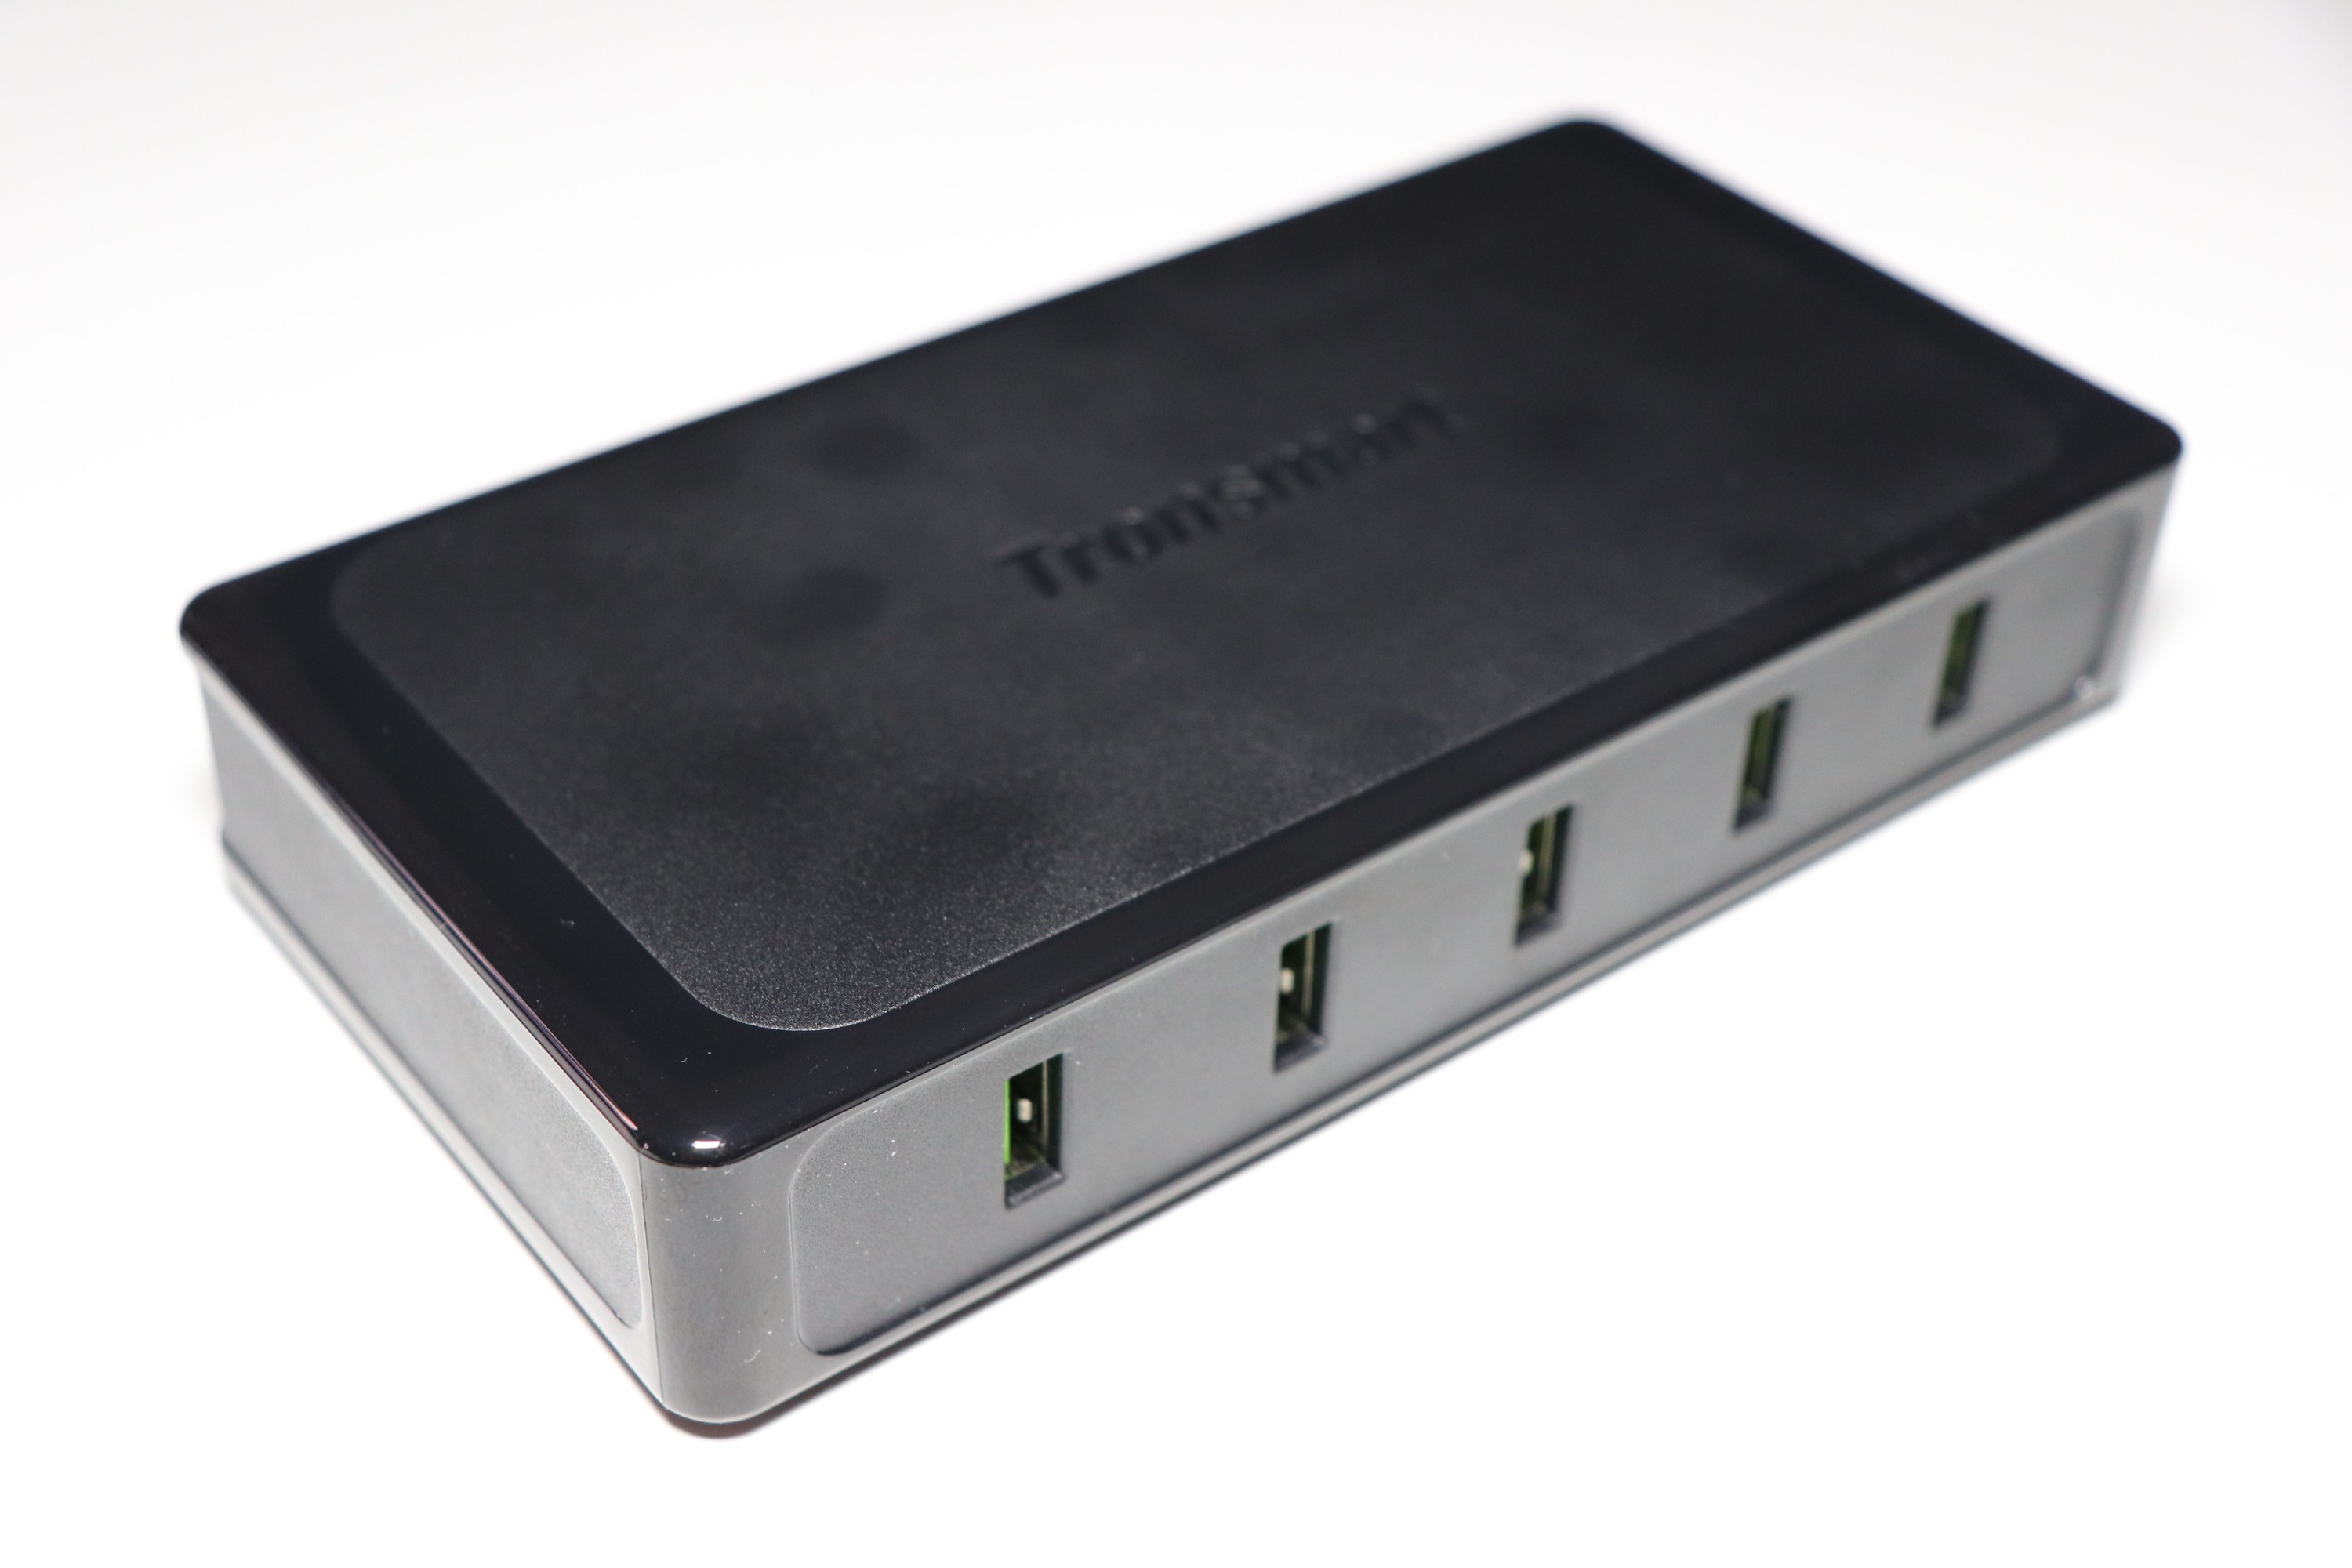 Tronsmart Titan Plus Ladestation Test 6